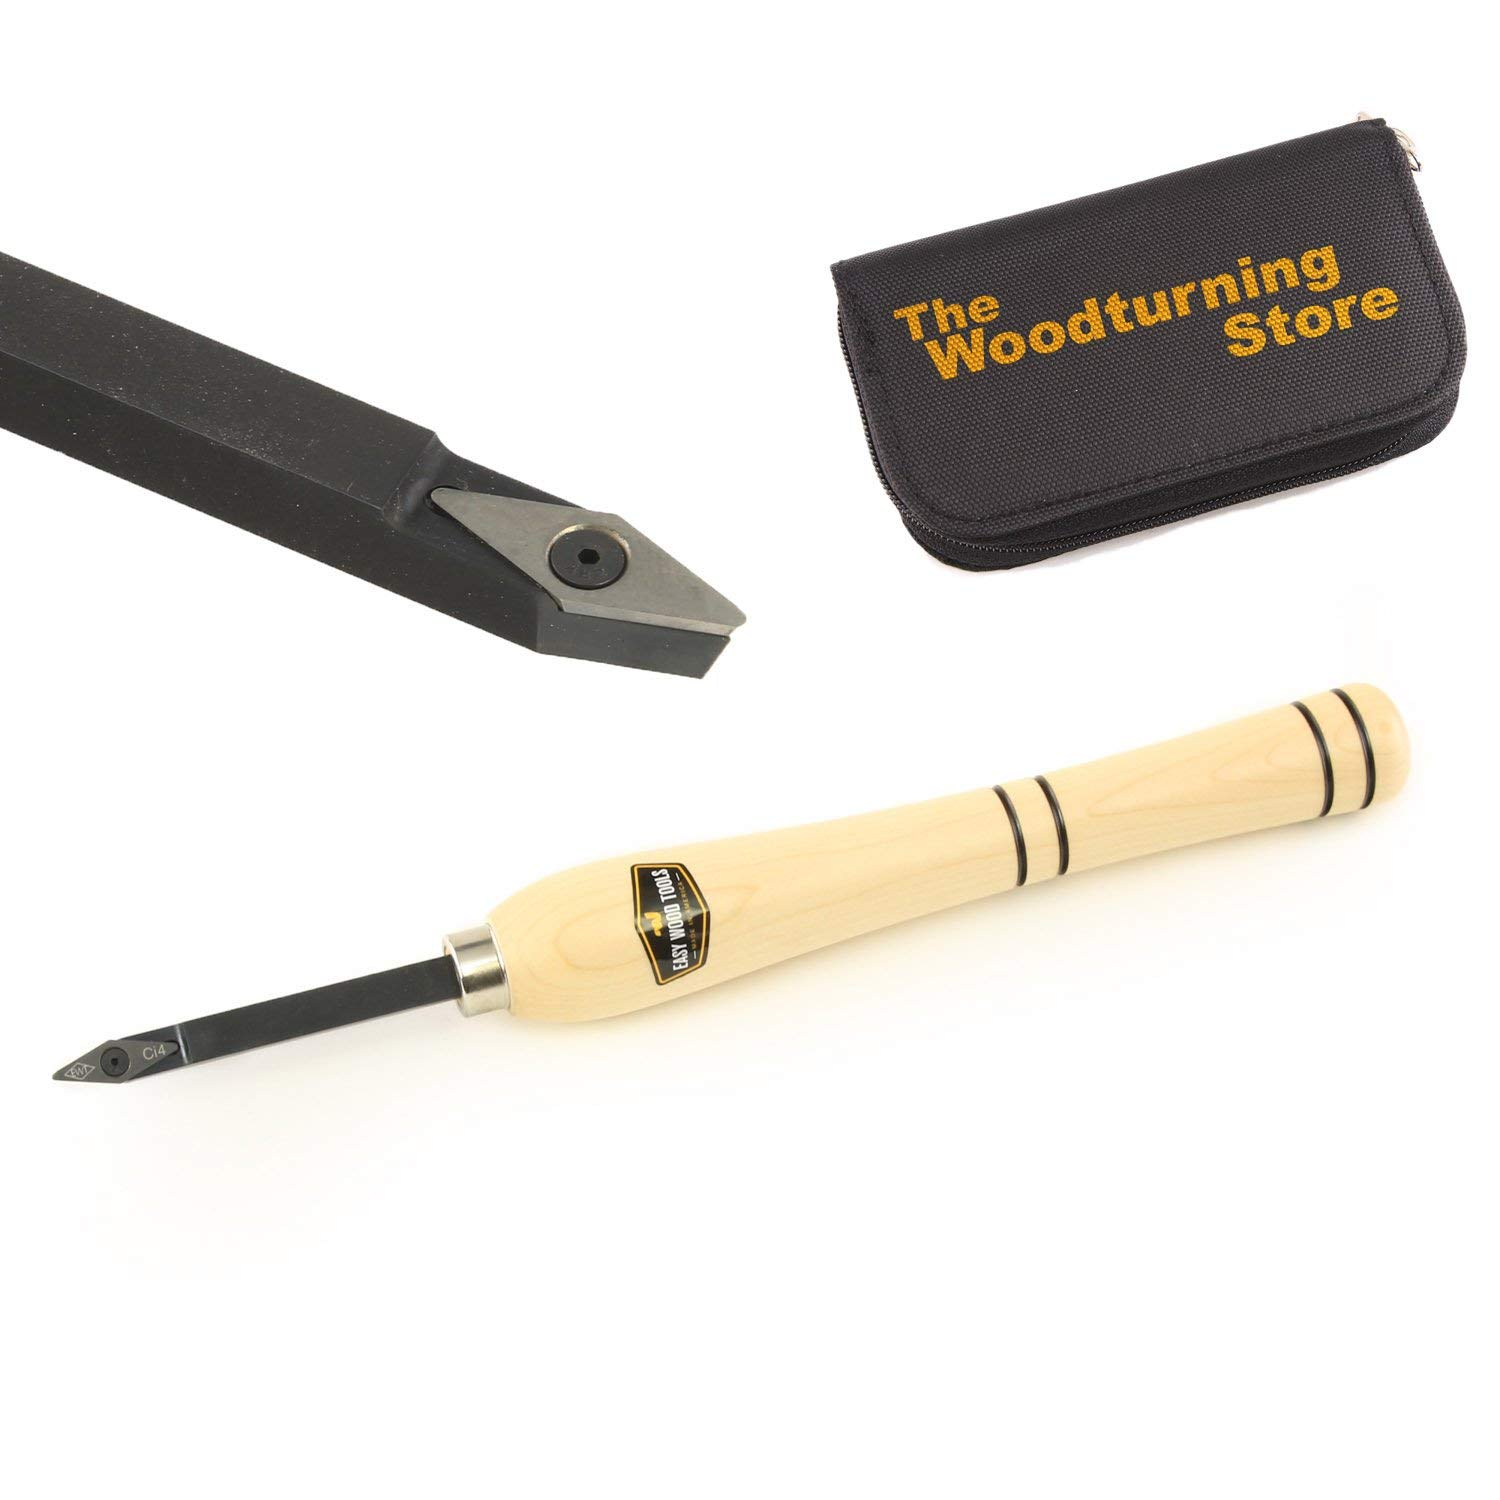 Easy Wood Tools, 9720, Easy Start Detailer with BONUS Woodturning Store Carbide Cutter Holder